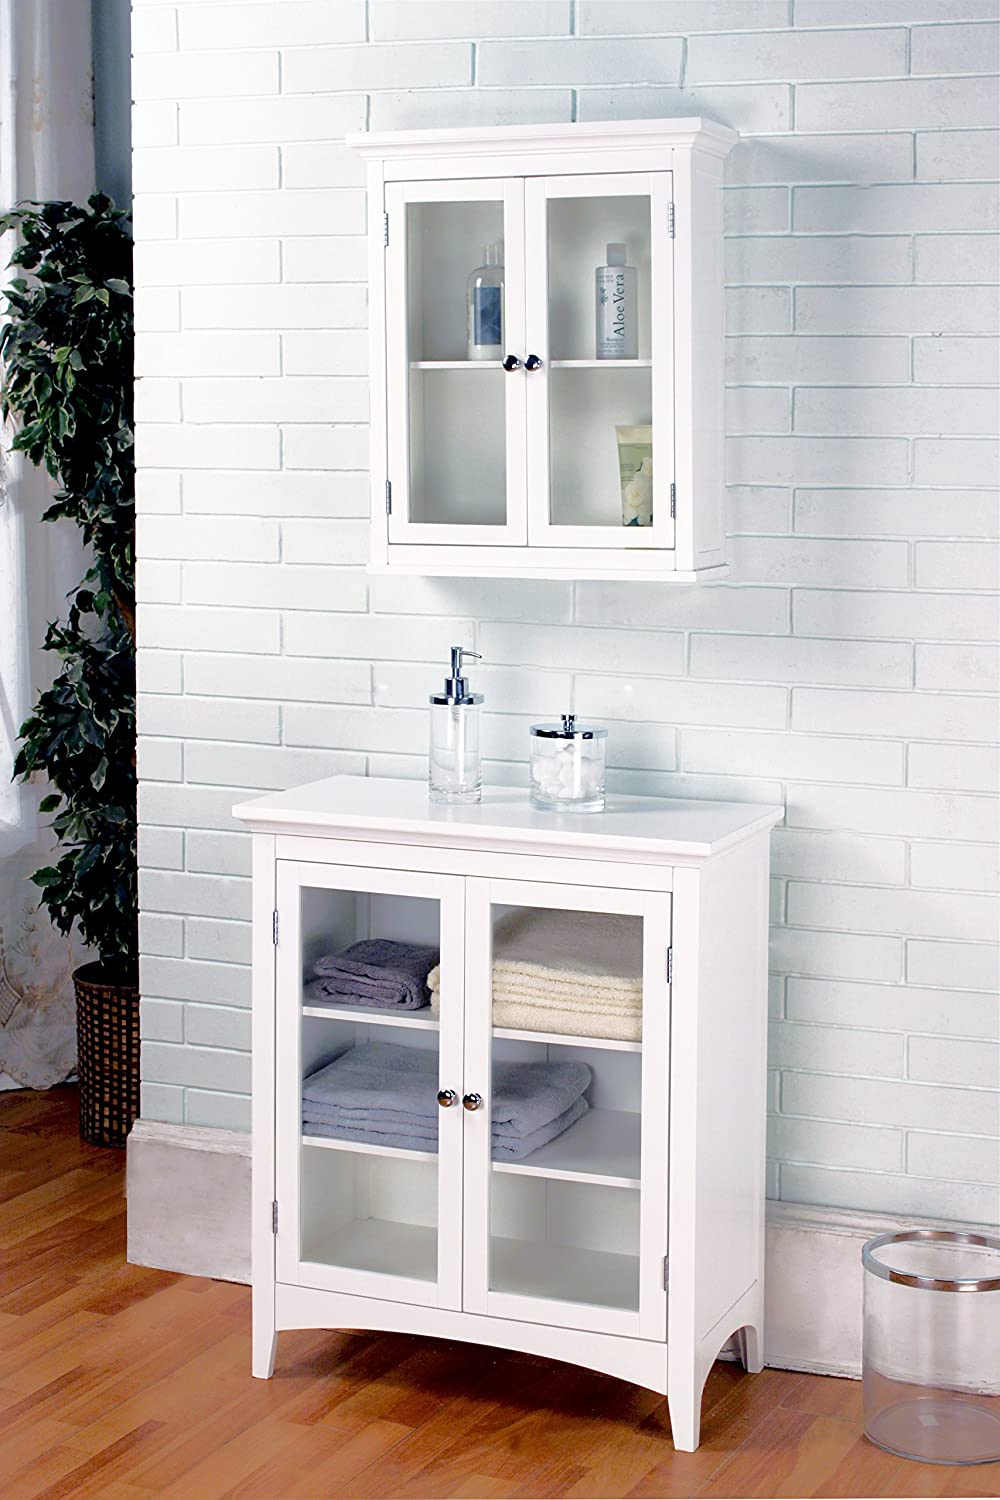 Perfect Amazon.com: Elegant Home Fashions Madison Collection Shelved Double Door Floor  Cabinet, White: Kitchen U0026 Dining